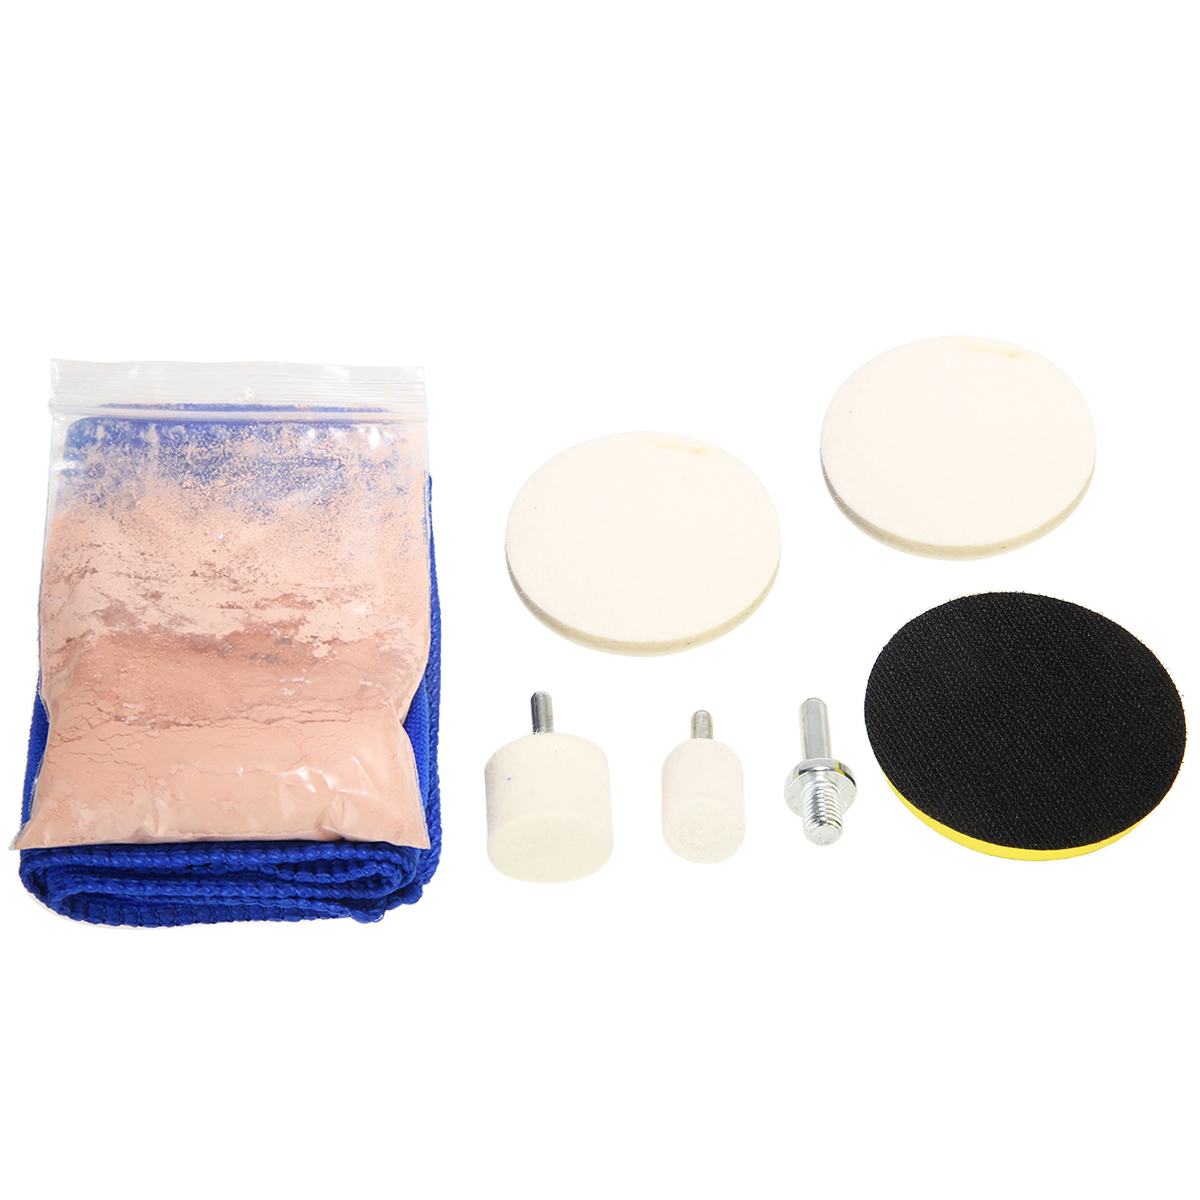 Mayitr 1 Set Car Windscreen Window Scratch Repair Remover Glass Polishing Kit Cleaning Kits Universal in Polishing Grinding Materials Set from Automobiles Motorcycles